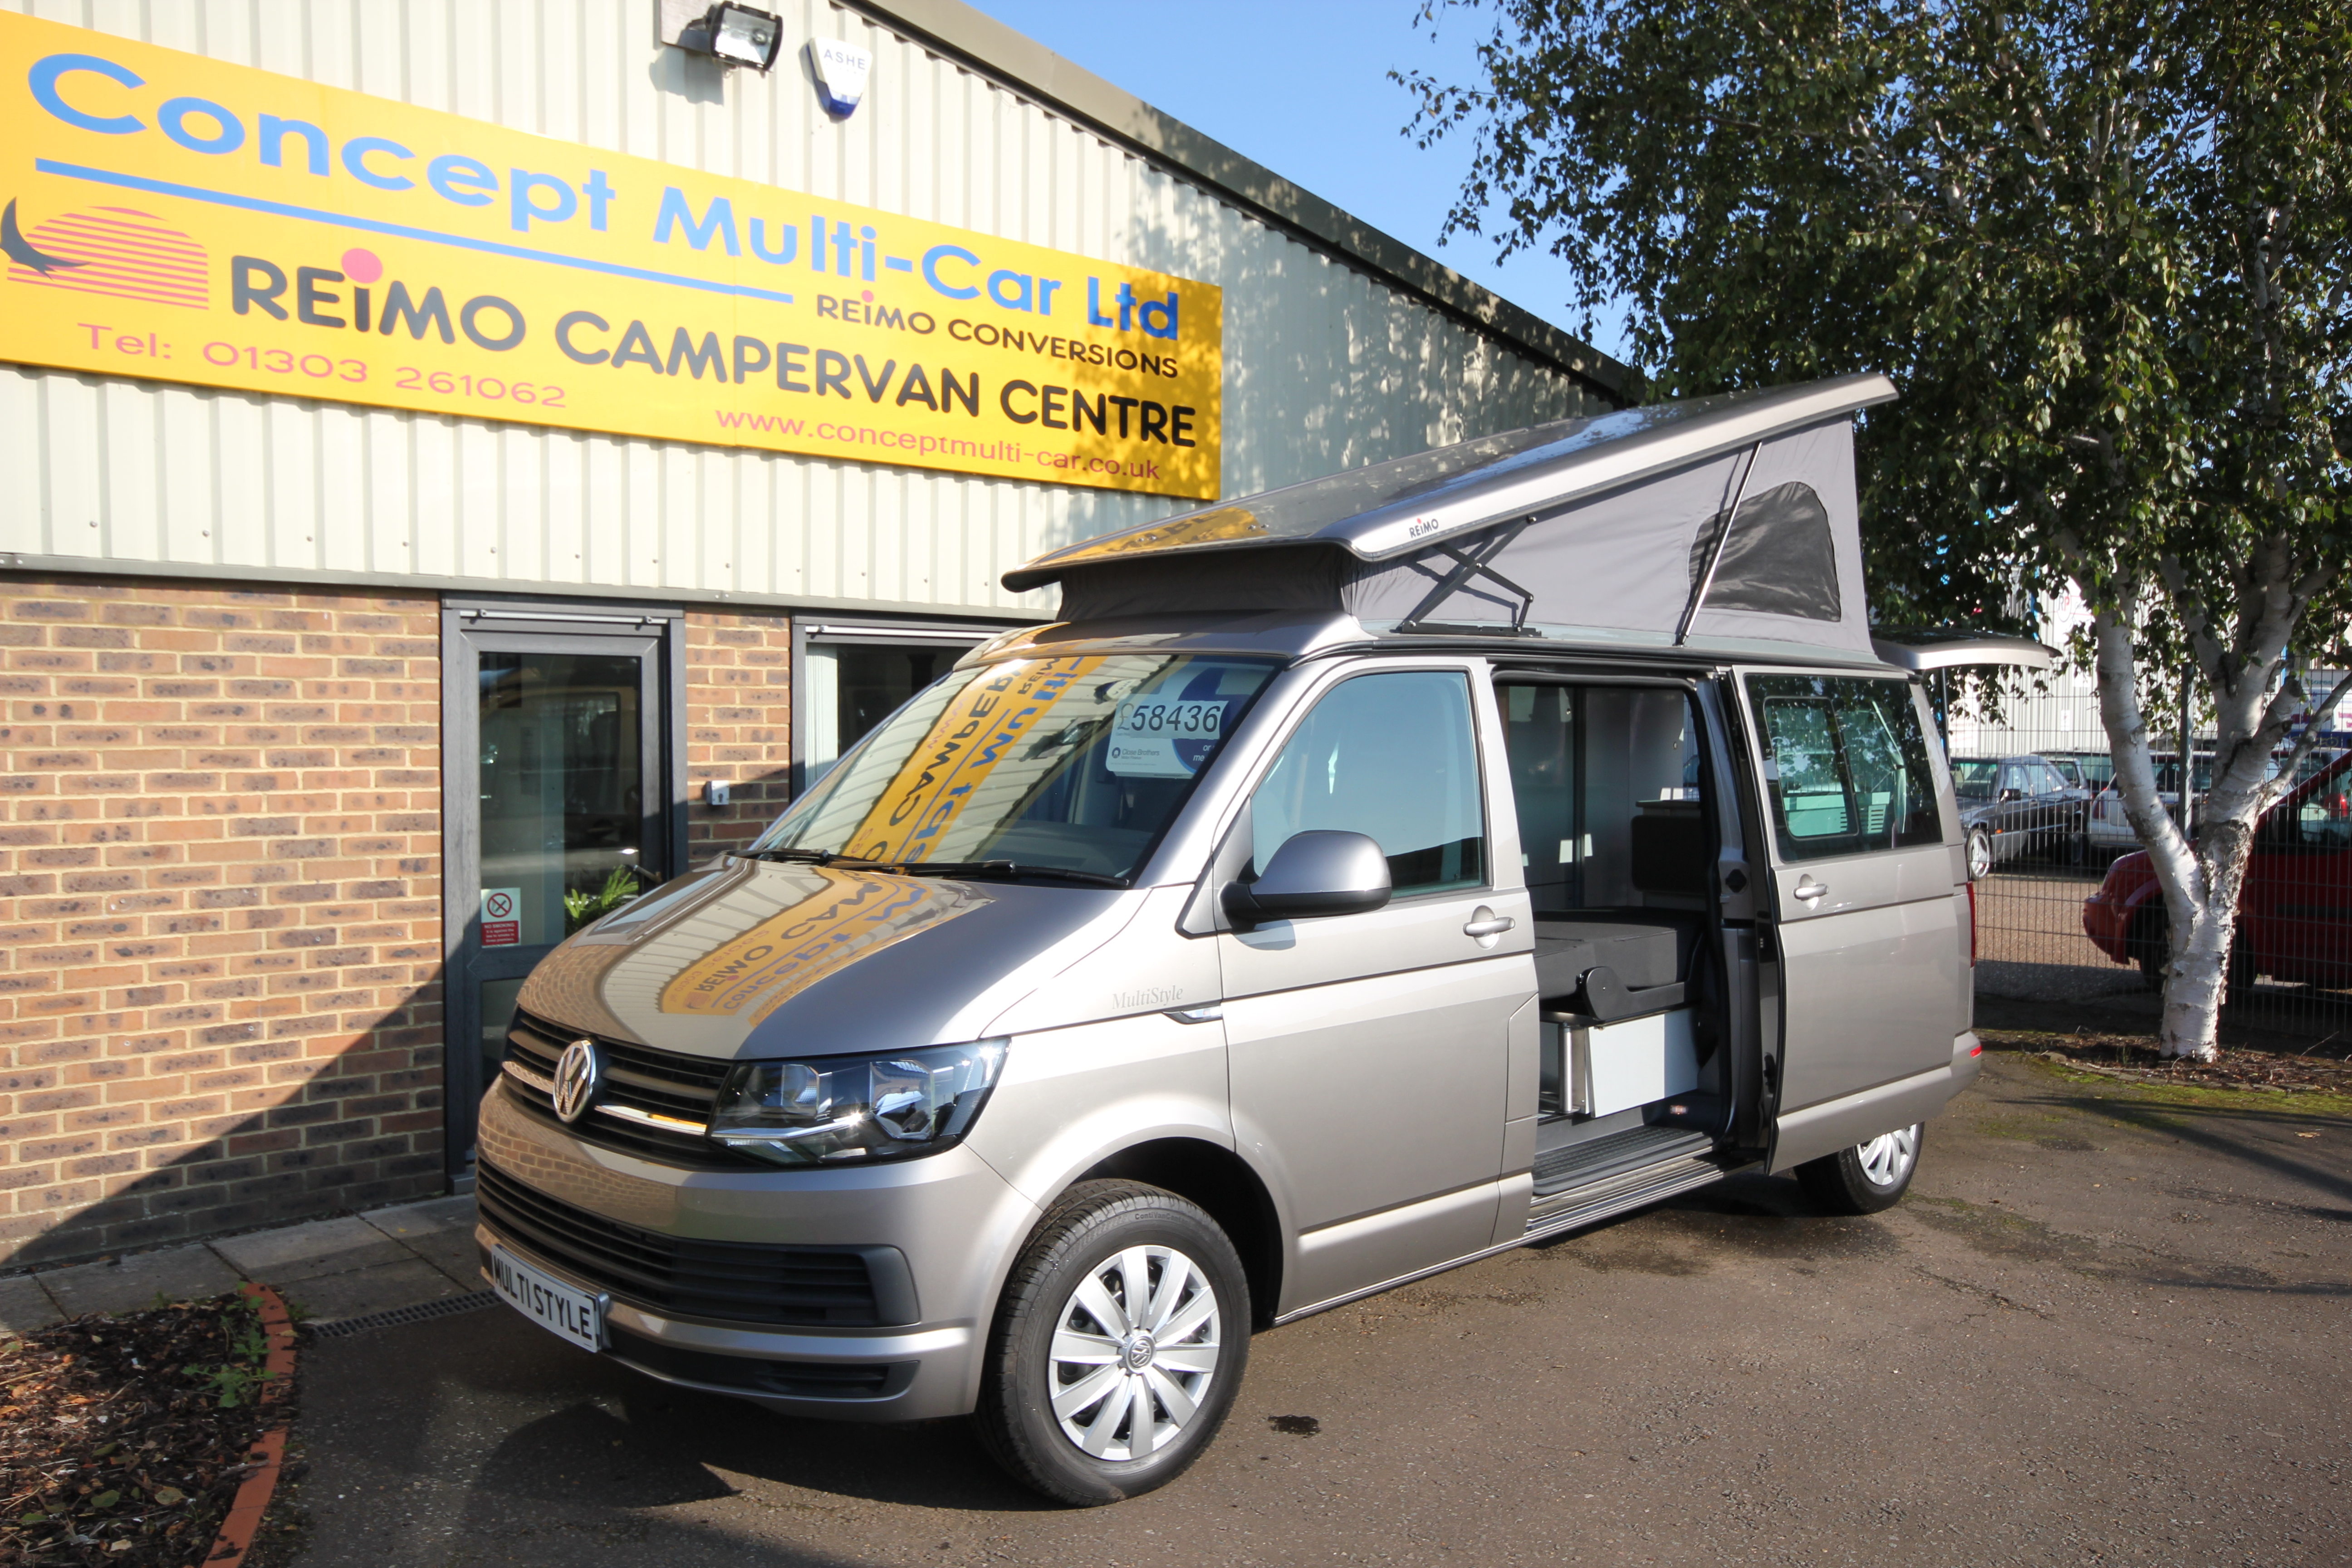 Cmc Reimo T6 Multistyle Concept Multi Car Vw And Reimo